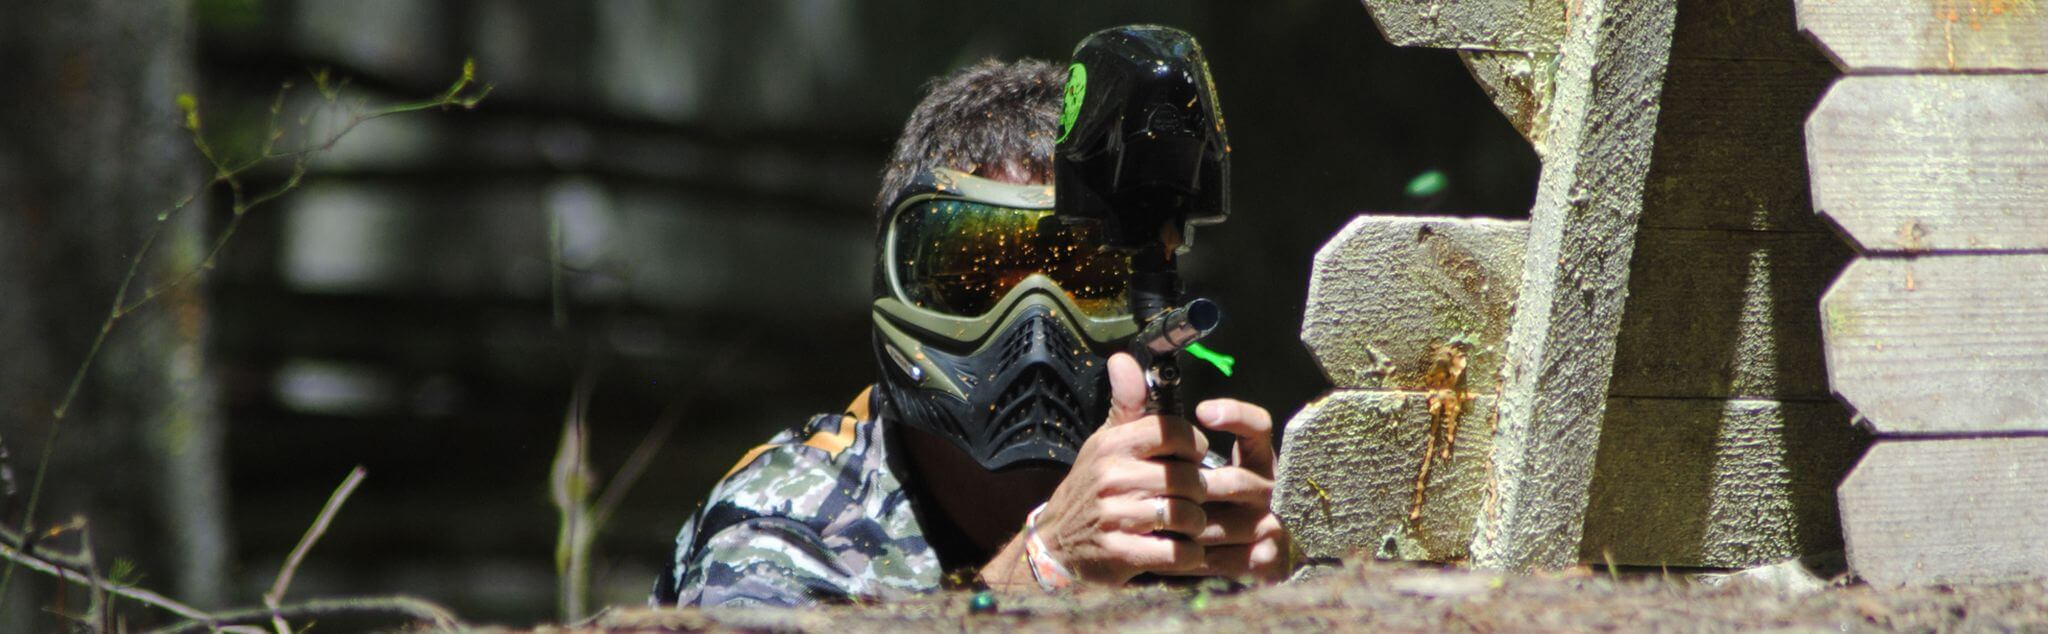 Paintball in Priego De Cordoba